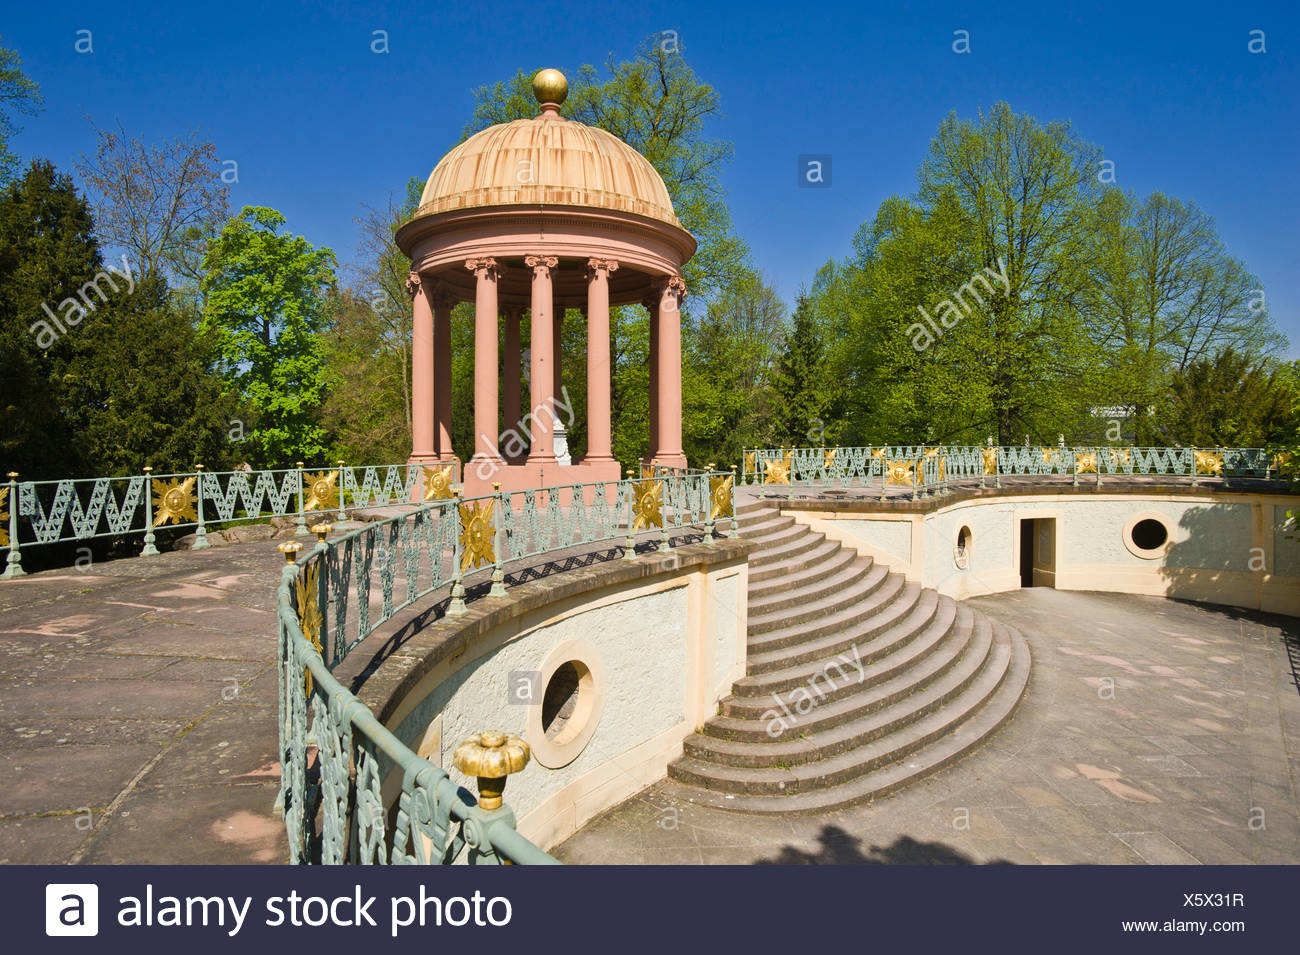 Schloss Schwetzingen Palace, Temple of Apollo in the Palace Gardens, Schwetzingen, Electoral Palatinate, Baden-Wuerttemberg - Stock Image